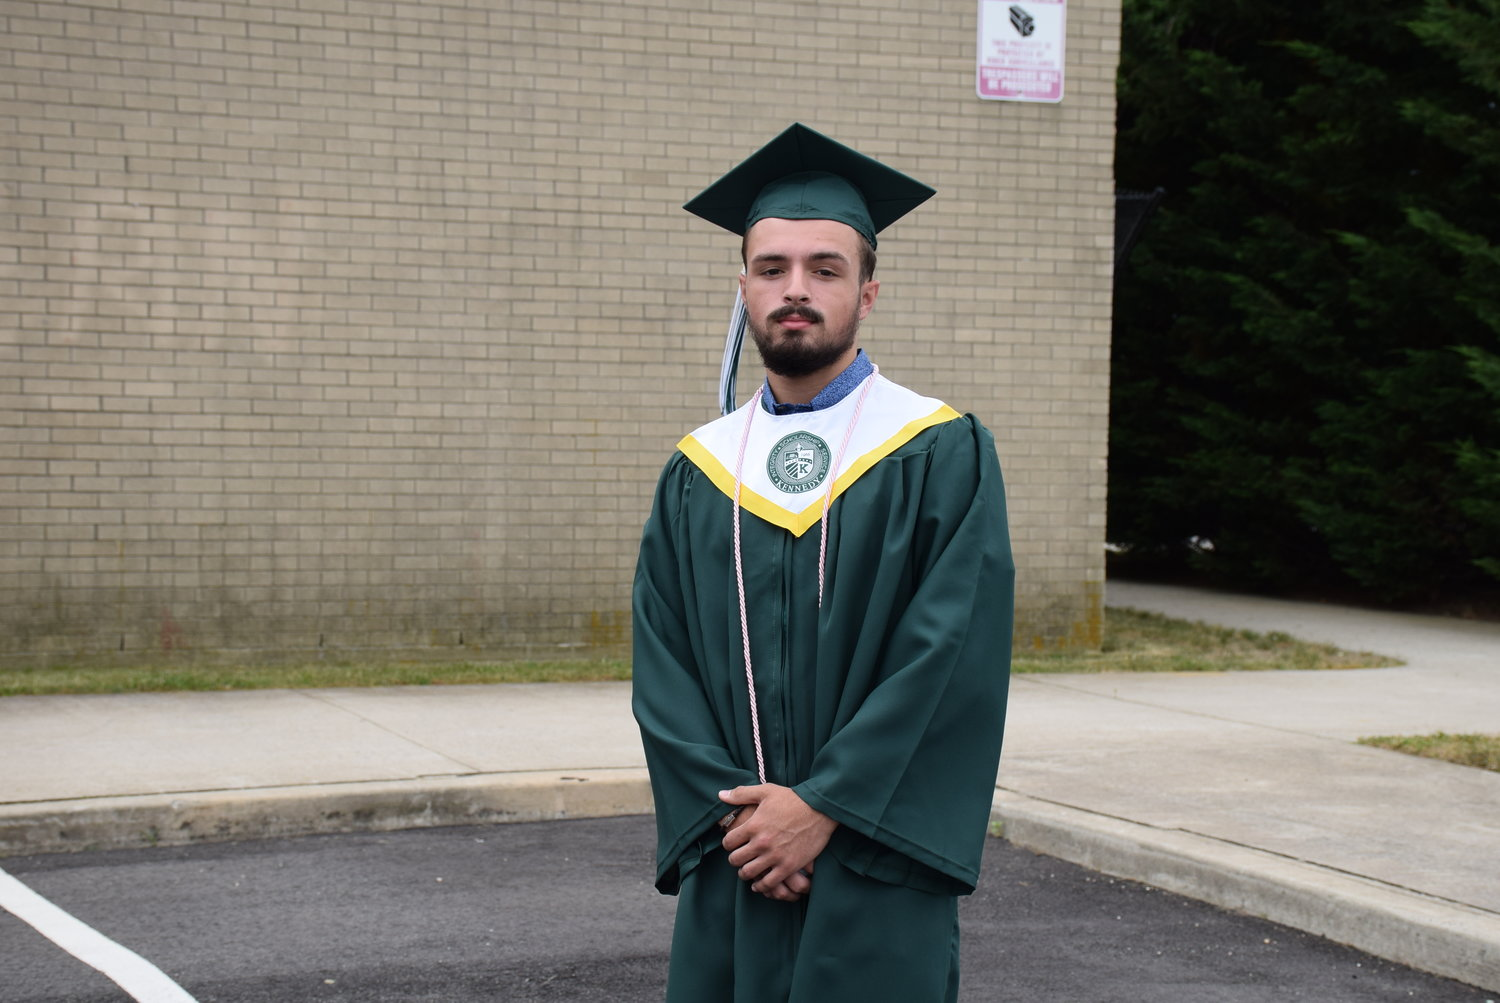 James Casazza readied for his graduation ceremony at Kennedy on June 27.